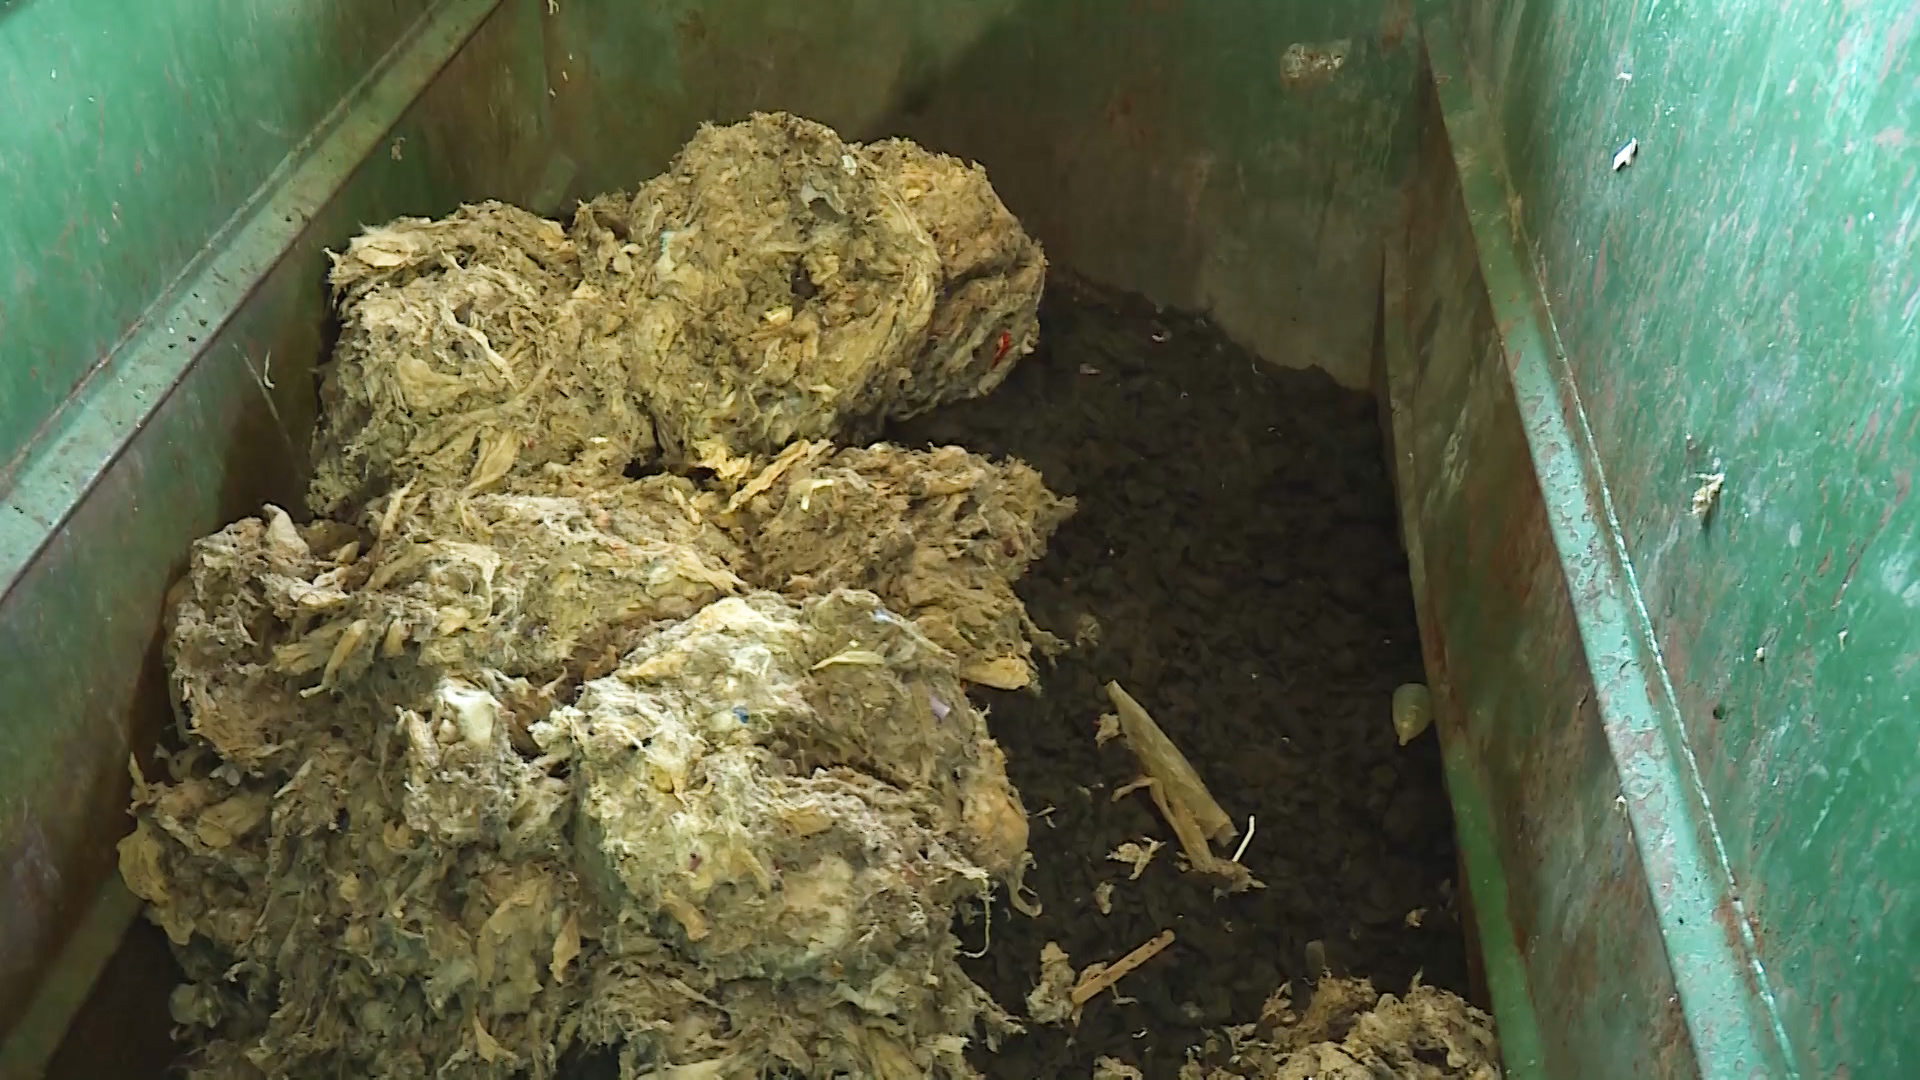 Flushing Wipes Causes Damage to Sewer Systems